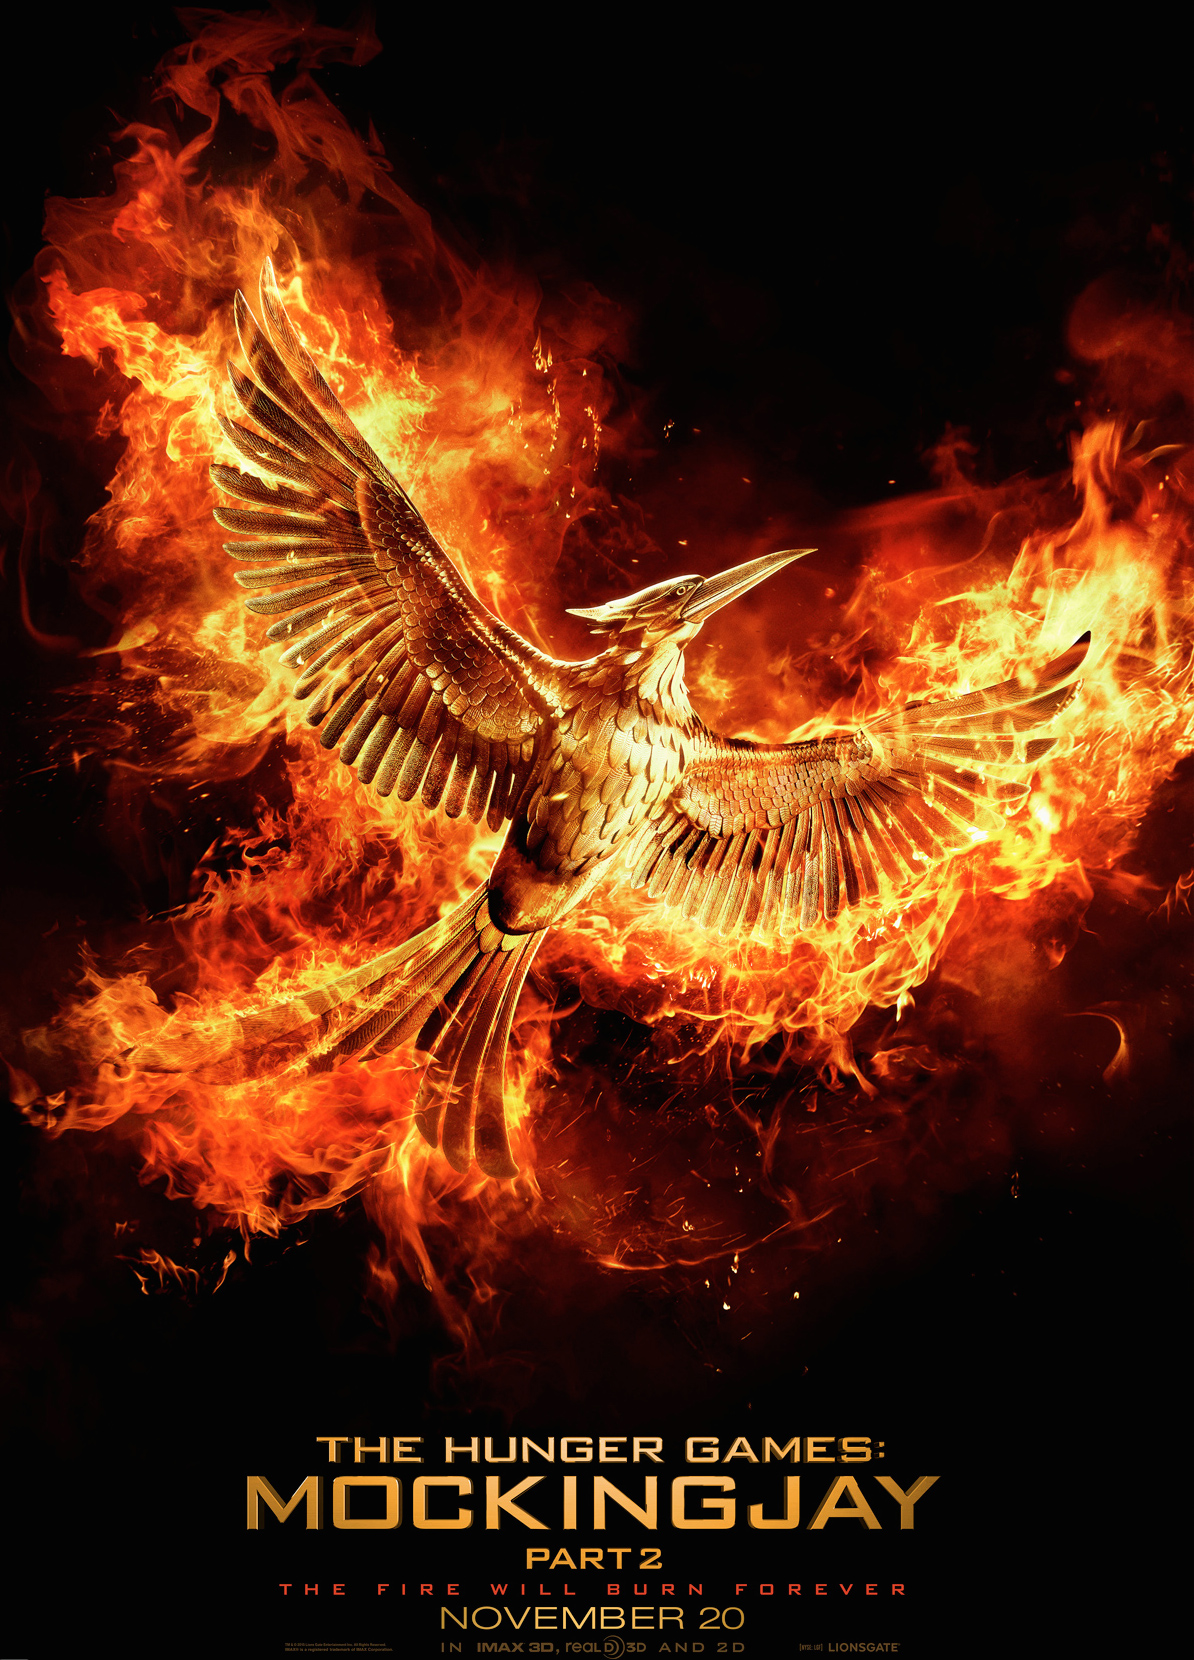 The Hunger Games: Mockingjay — Part 2 Trailer 2